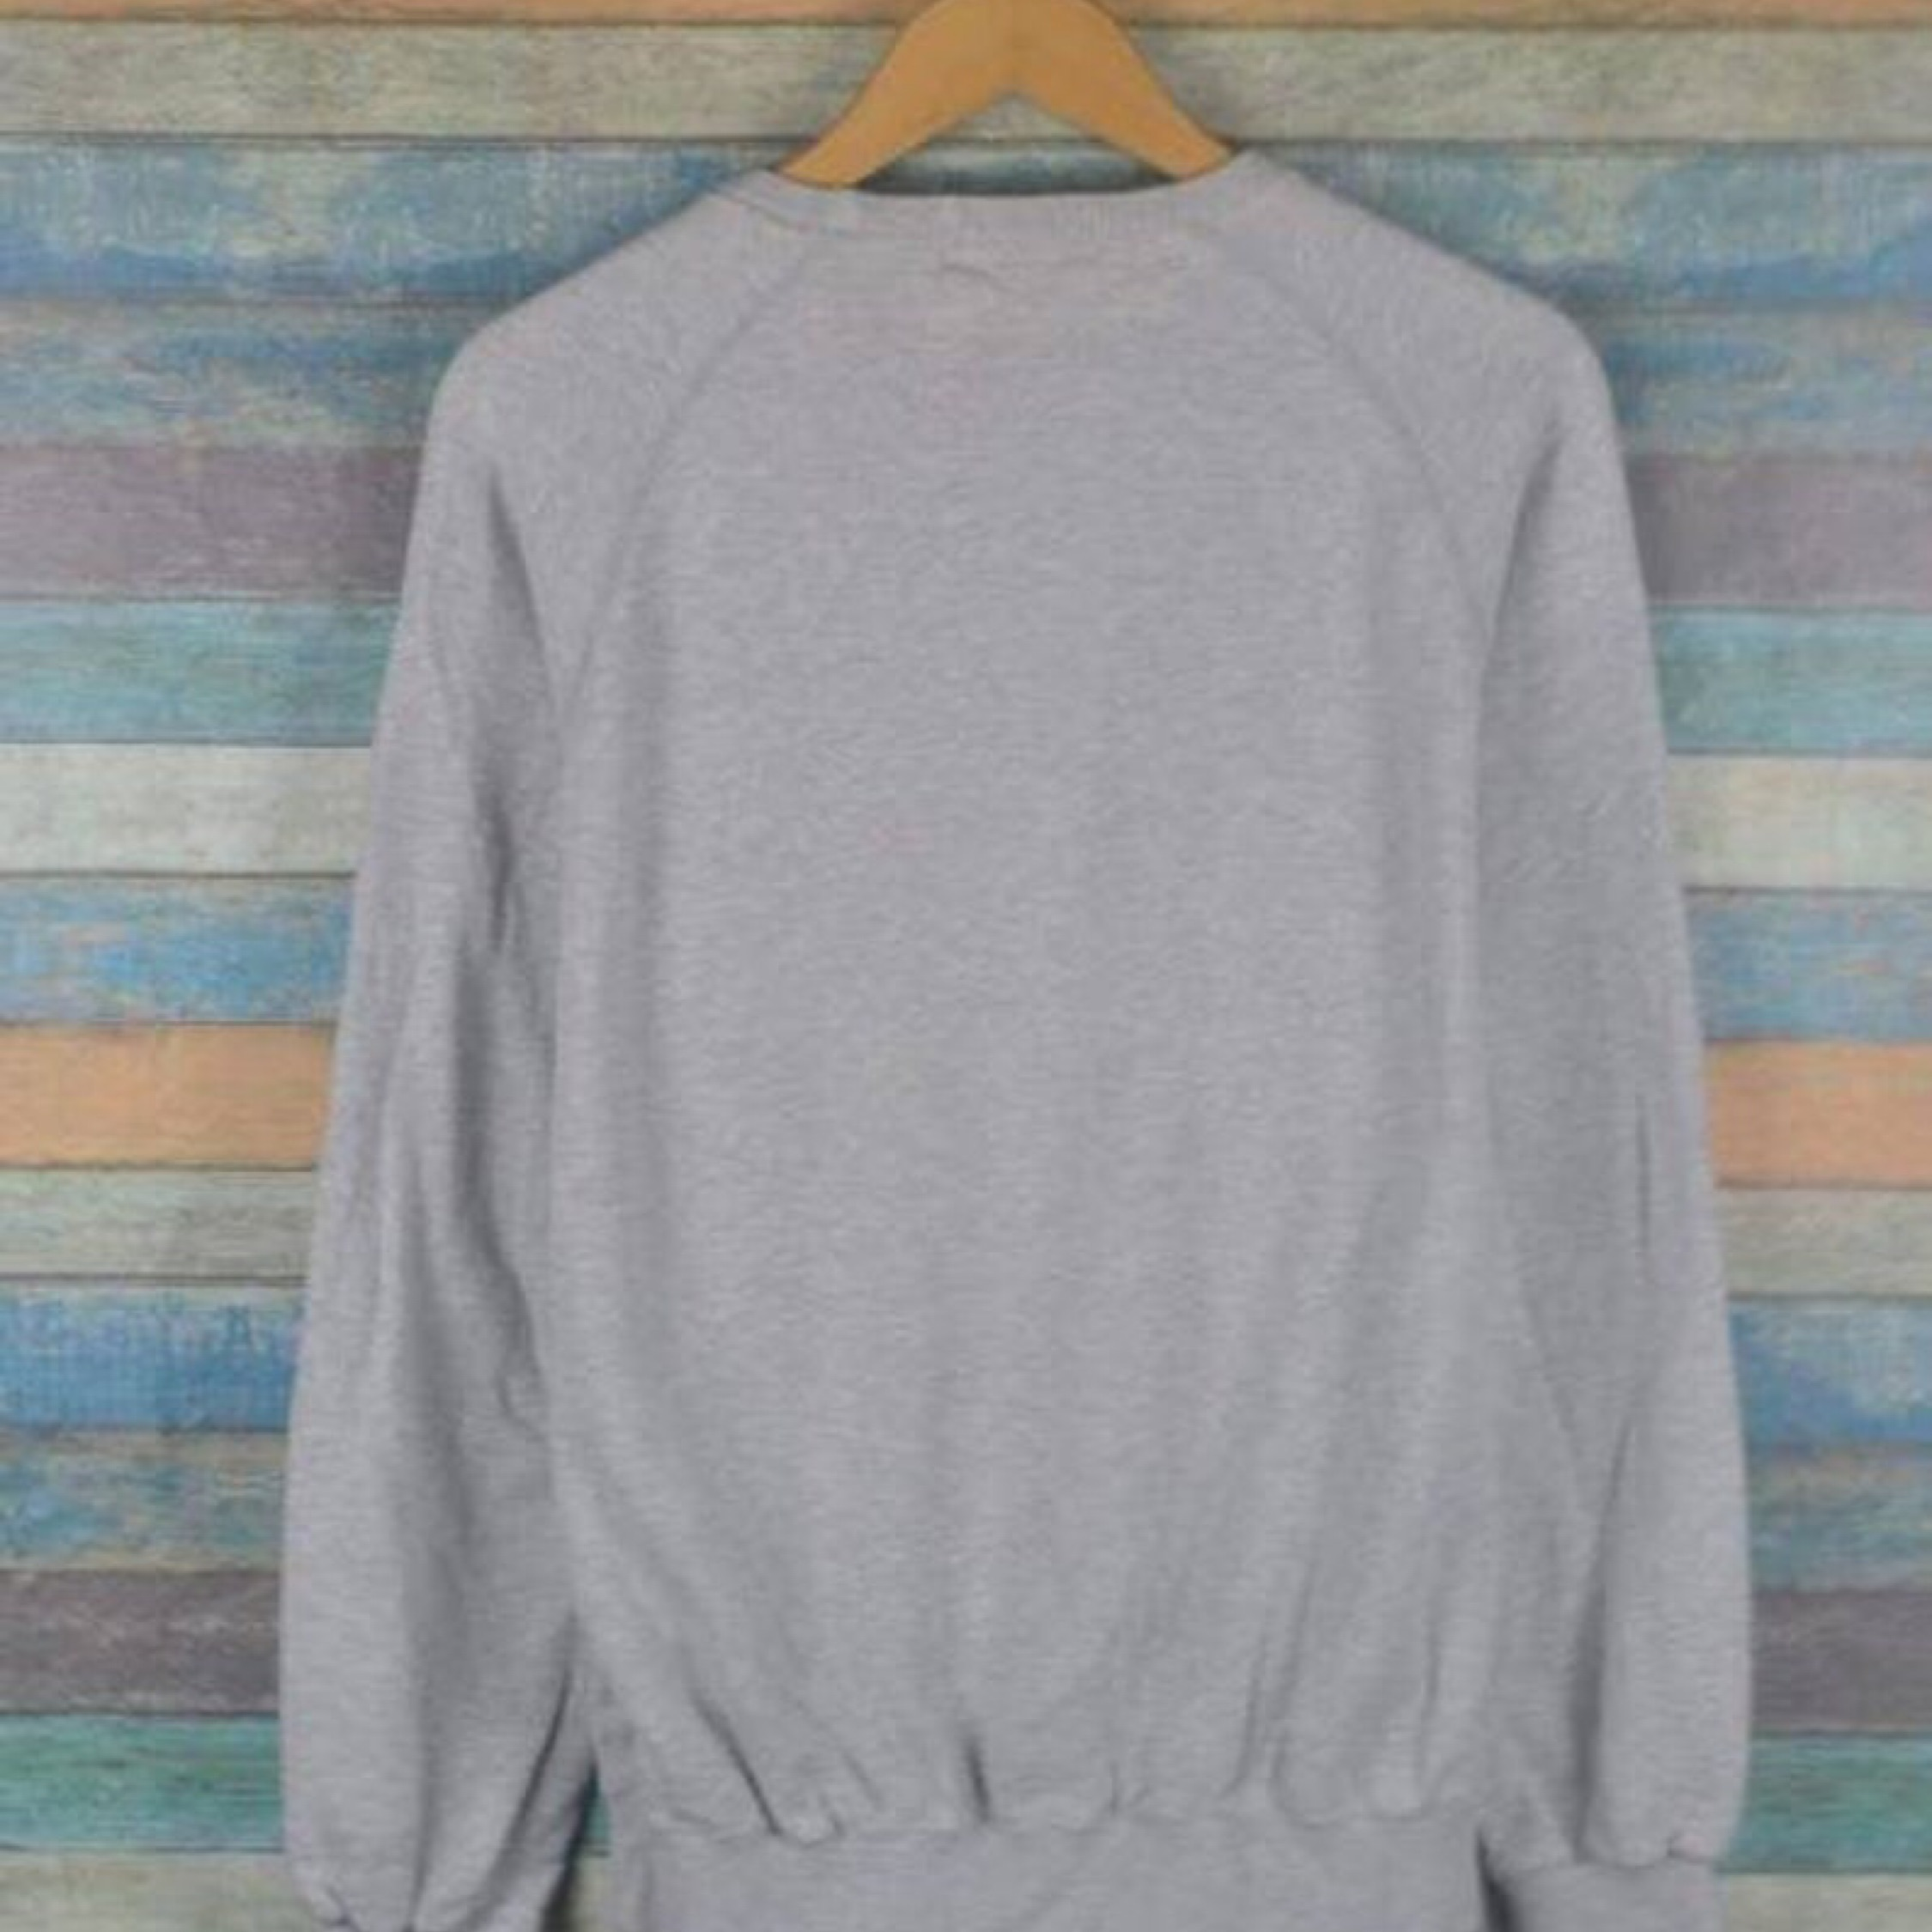 Vintage Polo Ralph Lauren Pony 90S Grey Sweatshirt